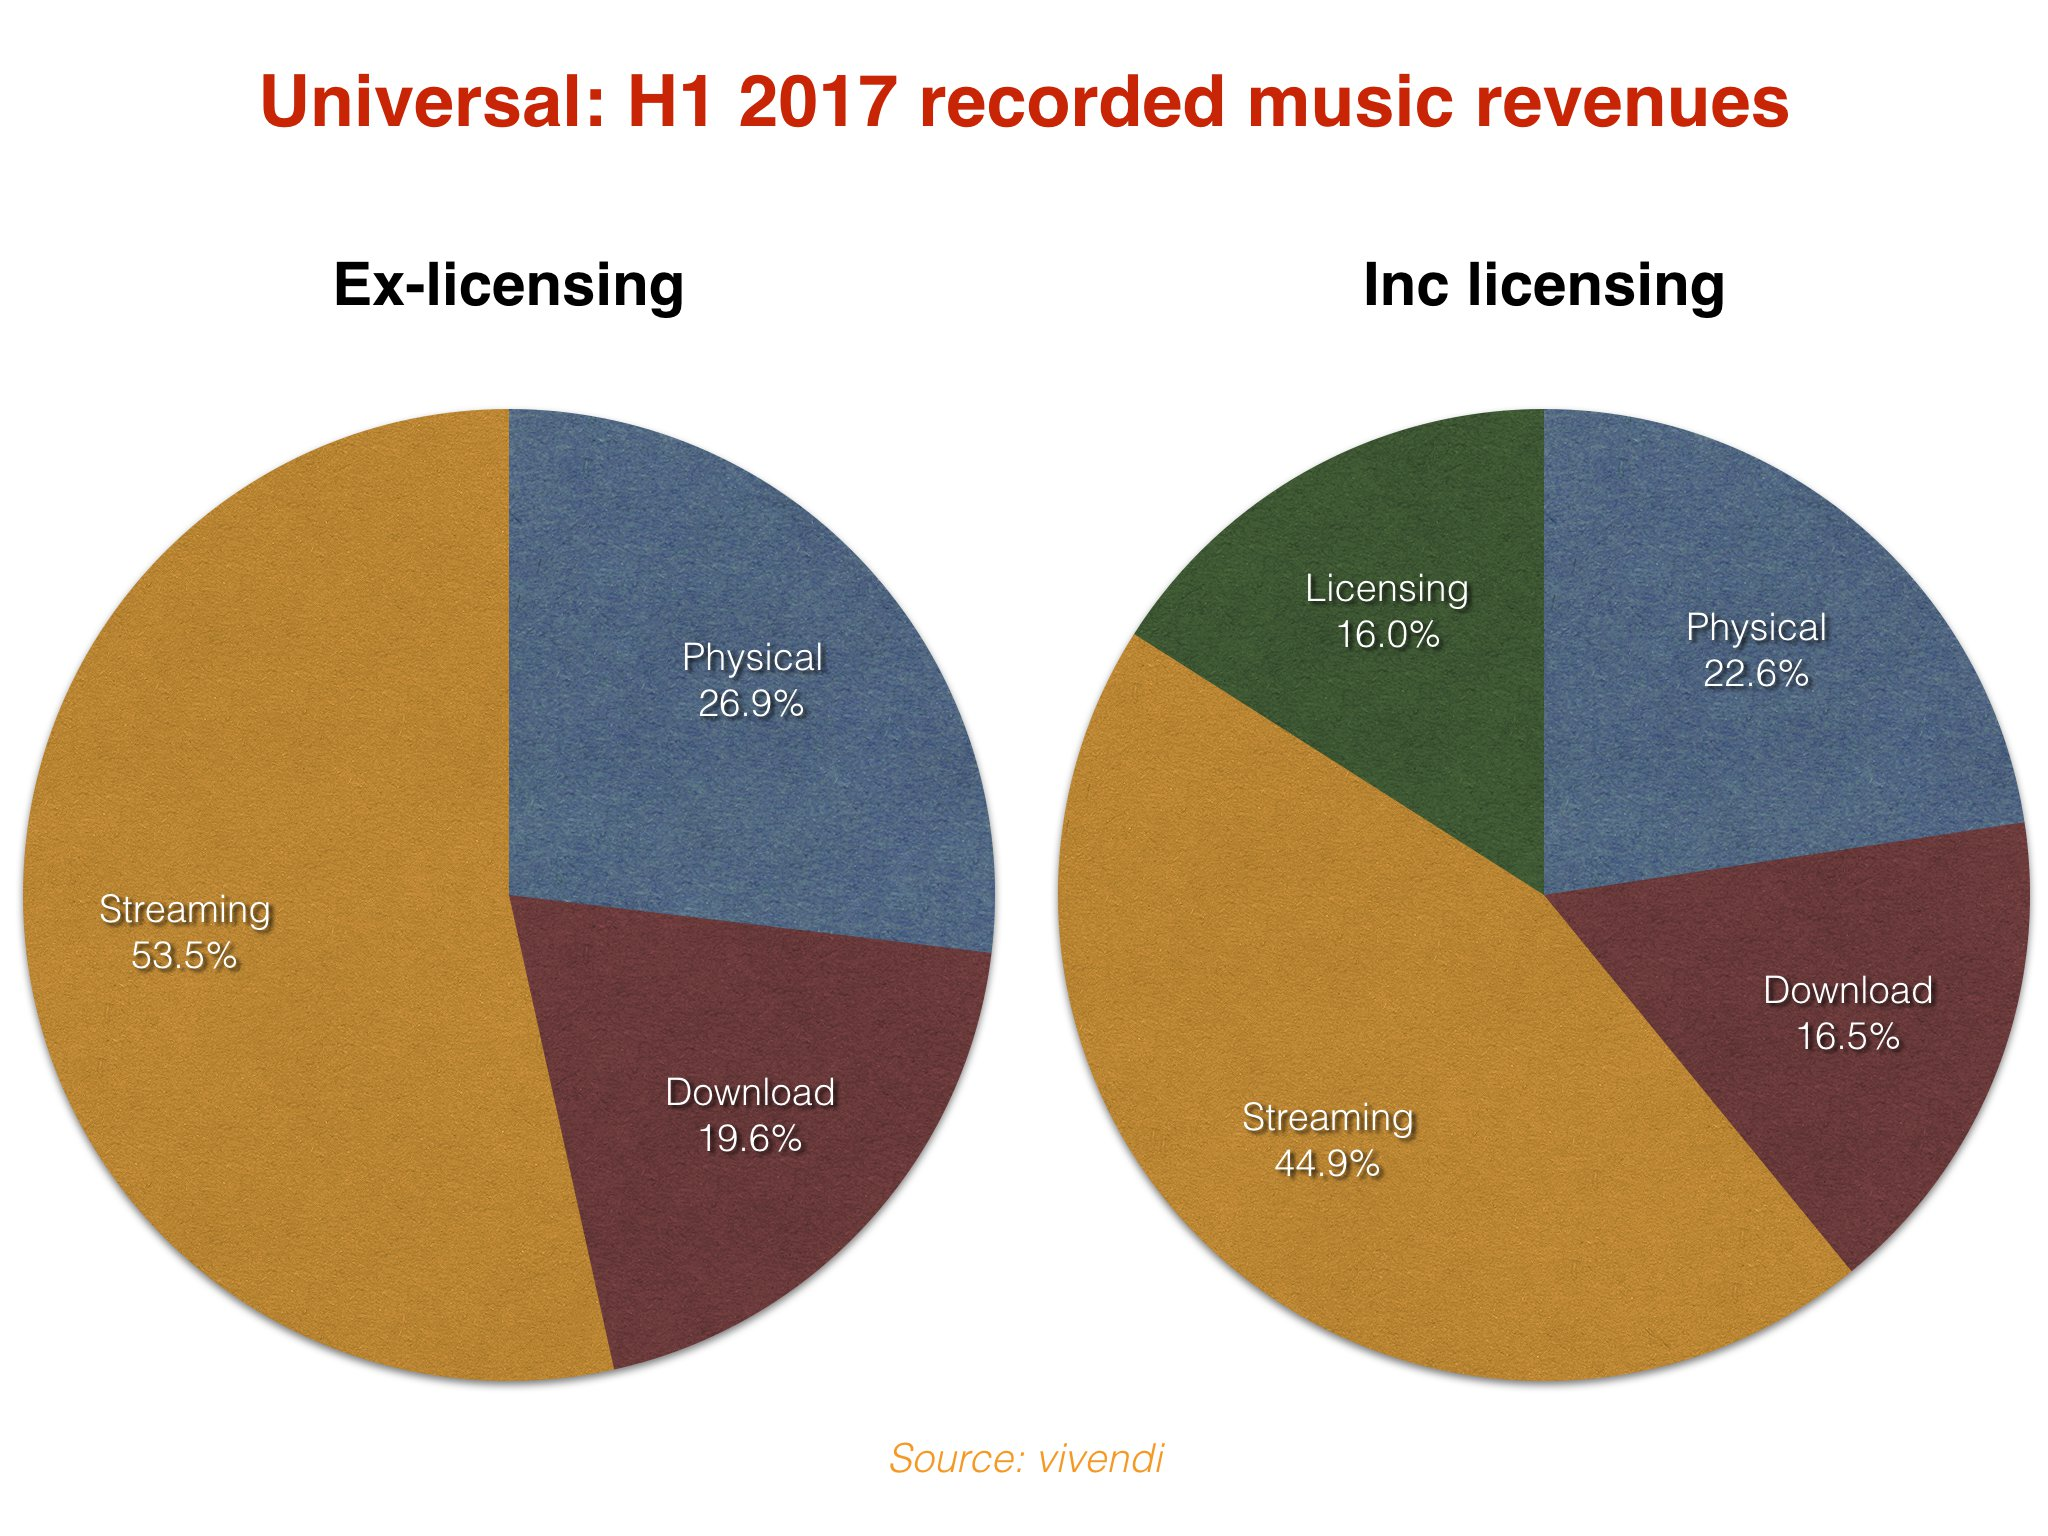 Universal Music Group Streaming Revenues Soar 45 To Top 1bn In H1